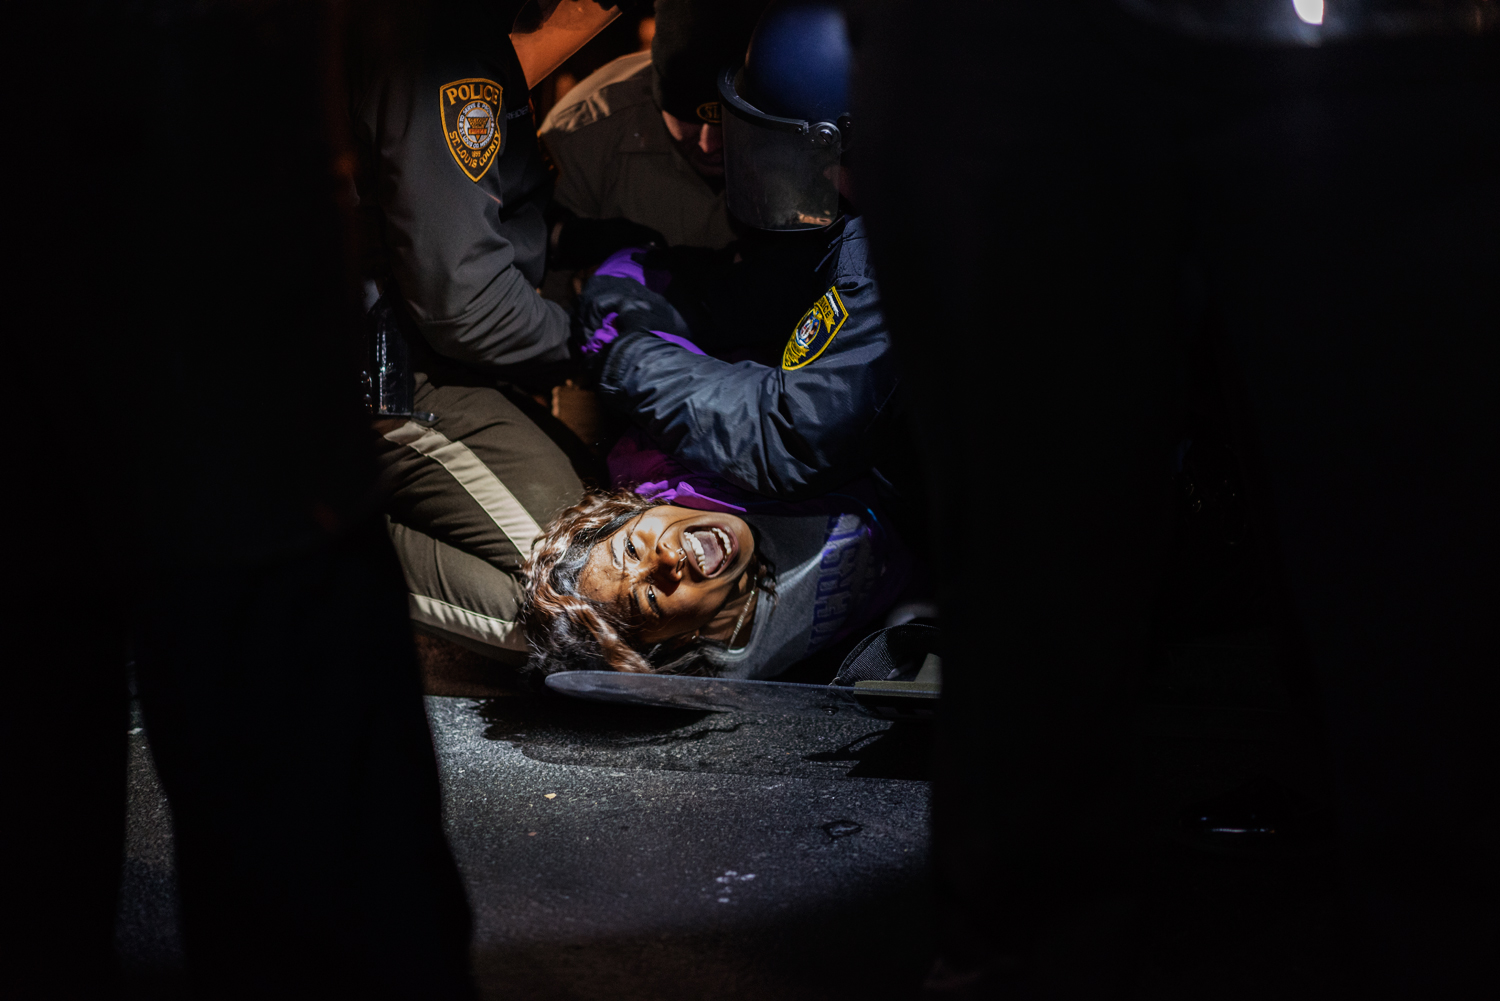 Dasha Jones, 19, is arrested for unlawful assembly during a protest ahead of the grand jury decision in the case against Darren Wilson, who shot unarmed black teenager Michael Brown, outside the Ferguson Police Department in Ferguson, Mo. on the evening of Nov. 20, 2014.